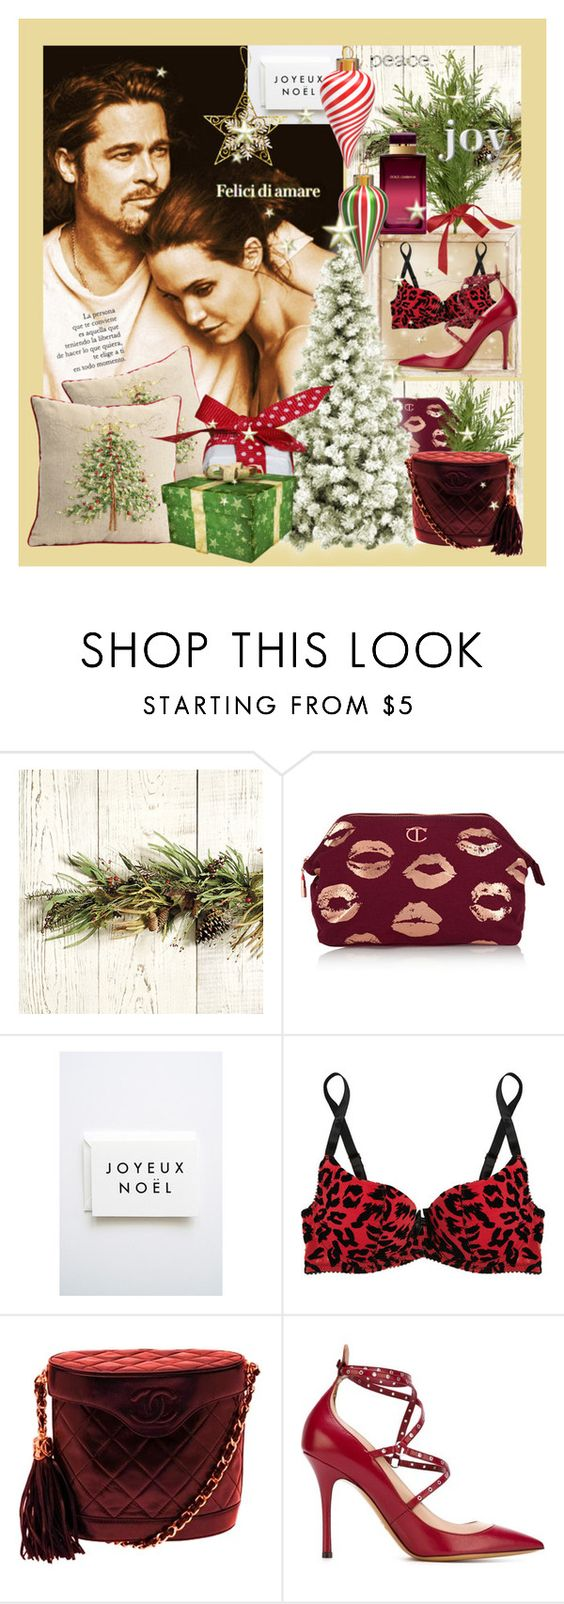 """""""The Princess - Carte Postale .. Joyeux Noël 2015 **"""" by sylvialucky ❤ liked on Polyvore featuring Ballard Designs, Dolce&Gabbana, Charlotte Tilbury, L'Agent By Agent Provocateur, Chanel and Valentino"""